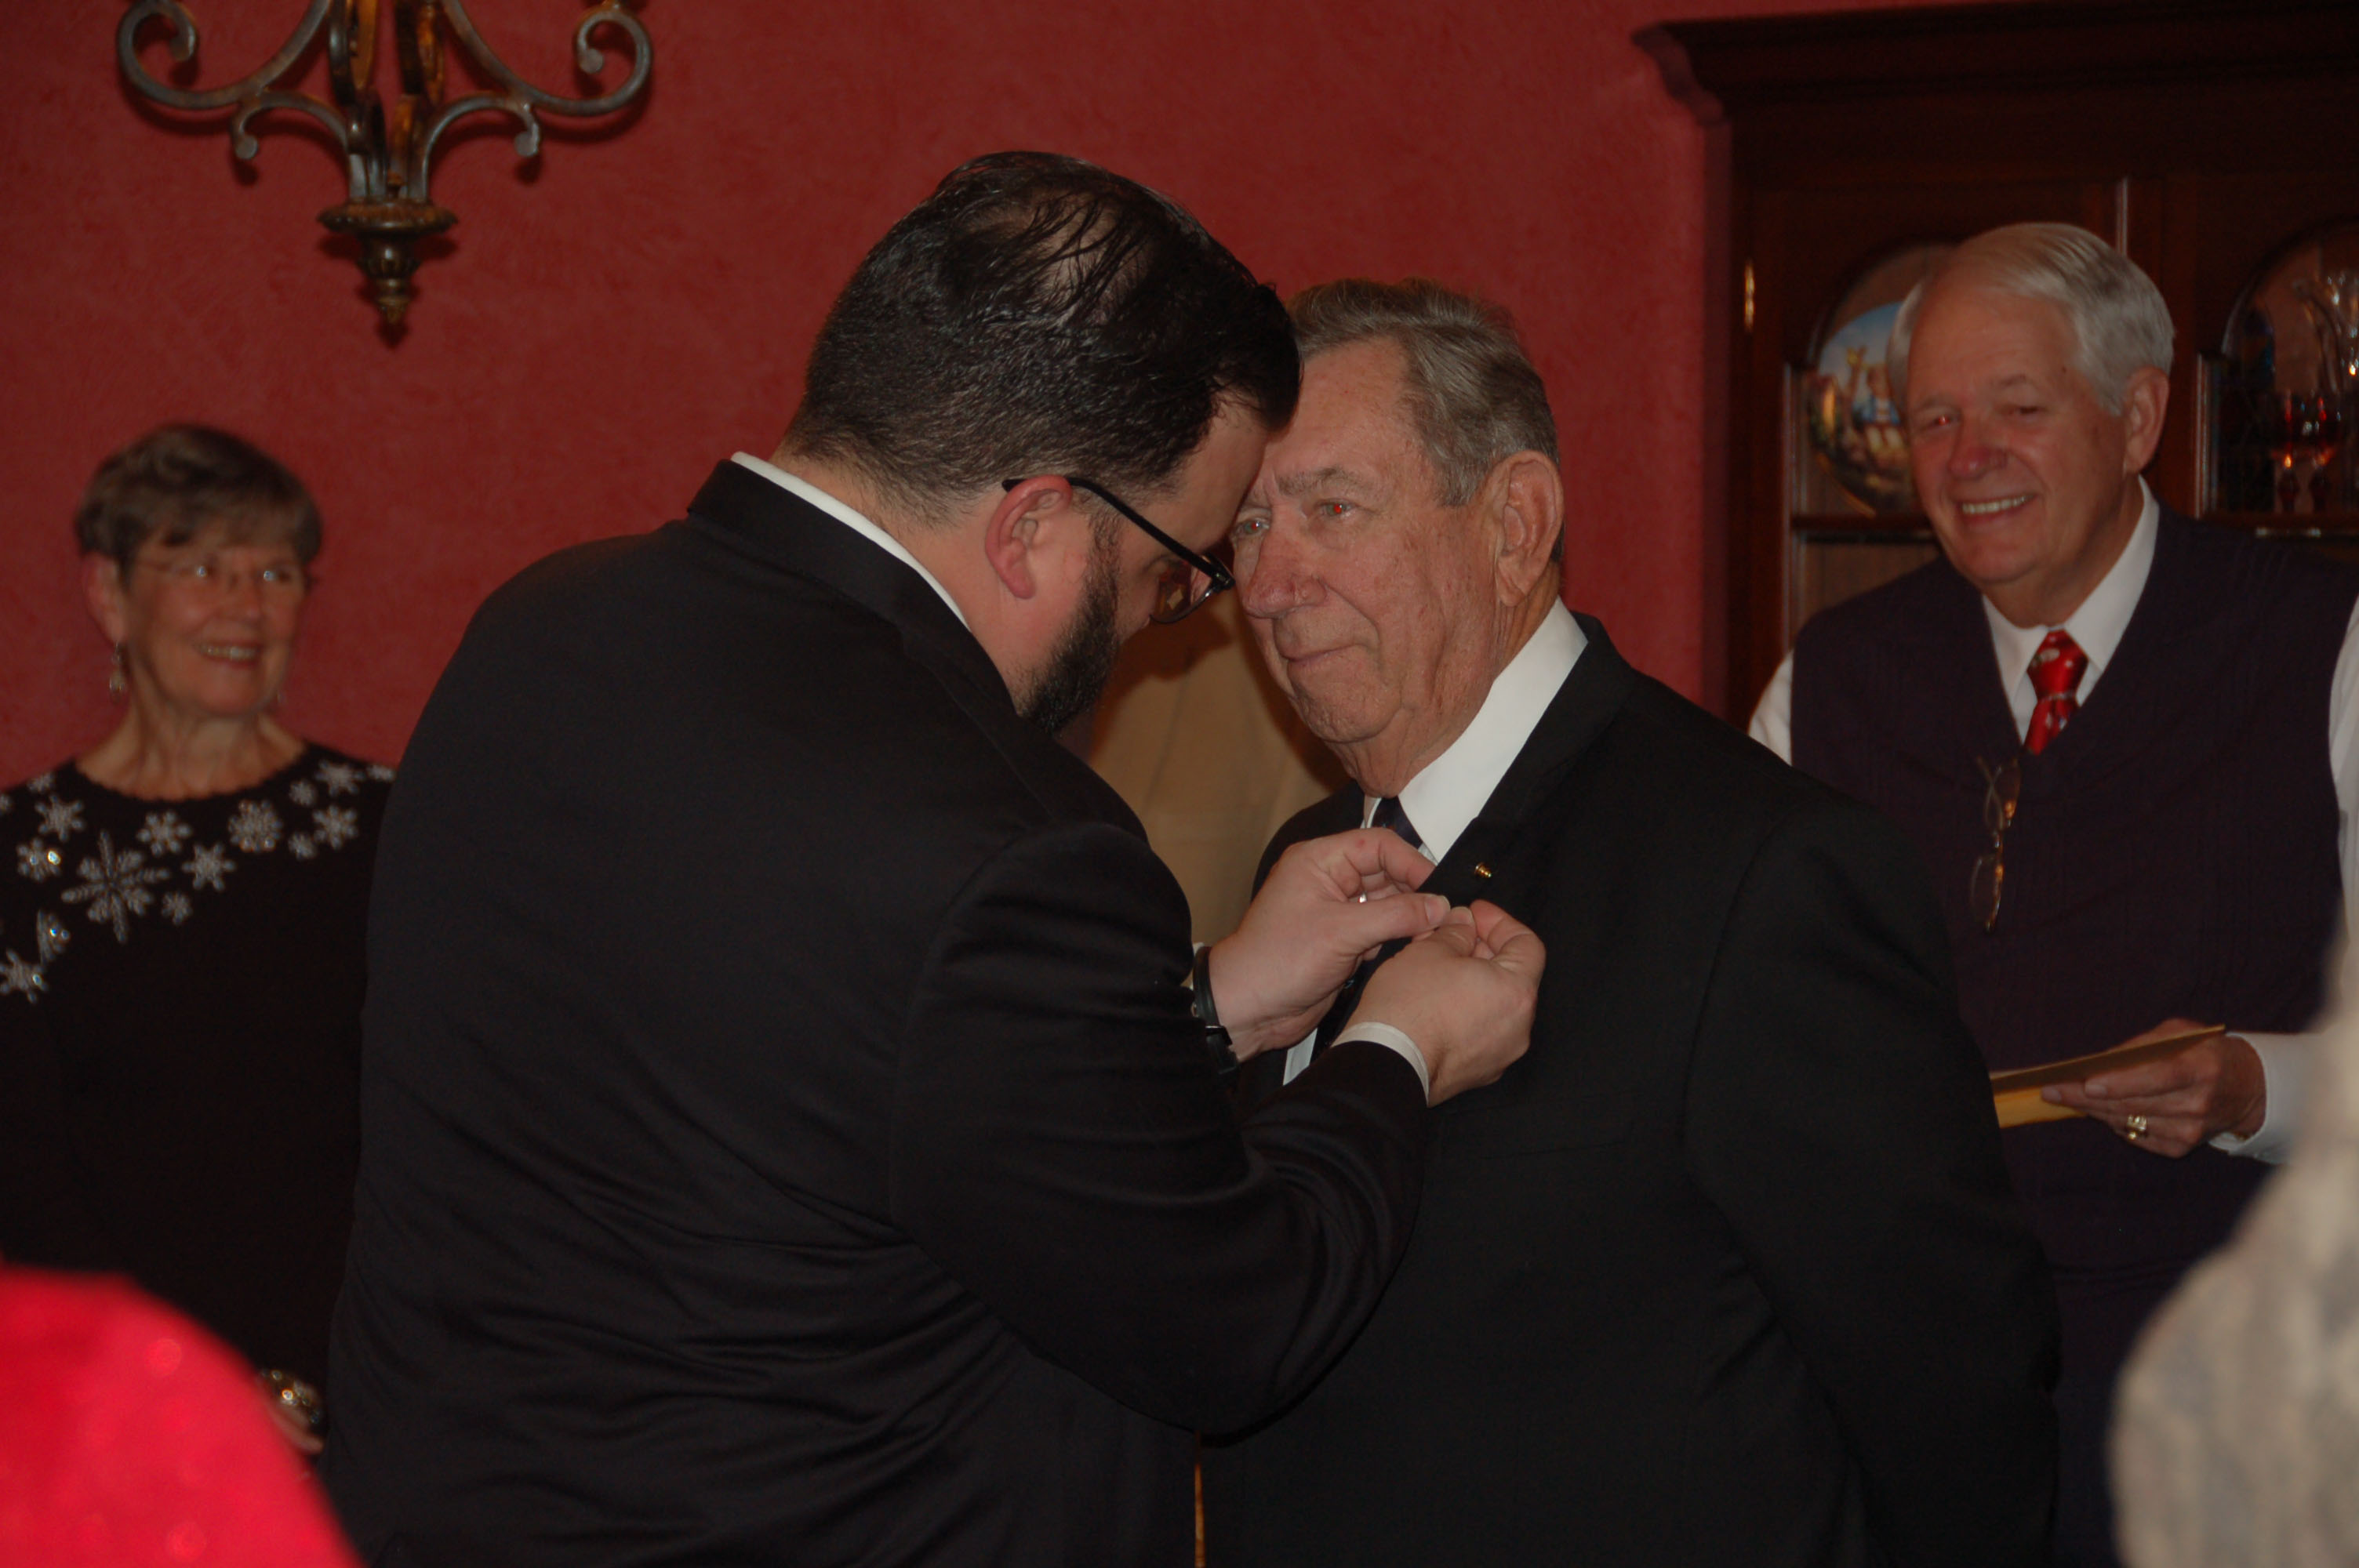 Ken Knotts pinning the Golden Trowel Lapel Pin on Harry Wood